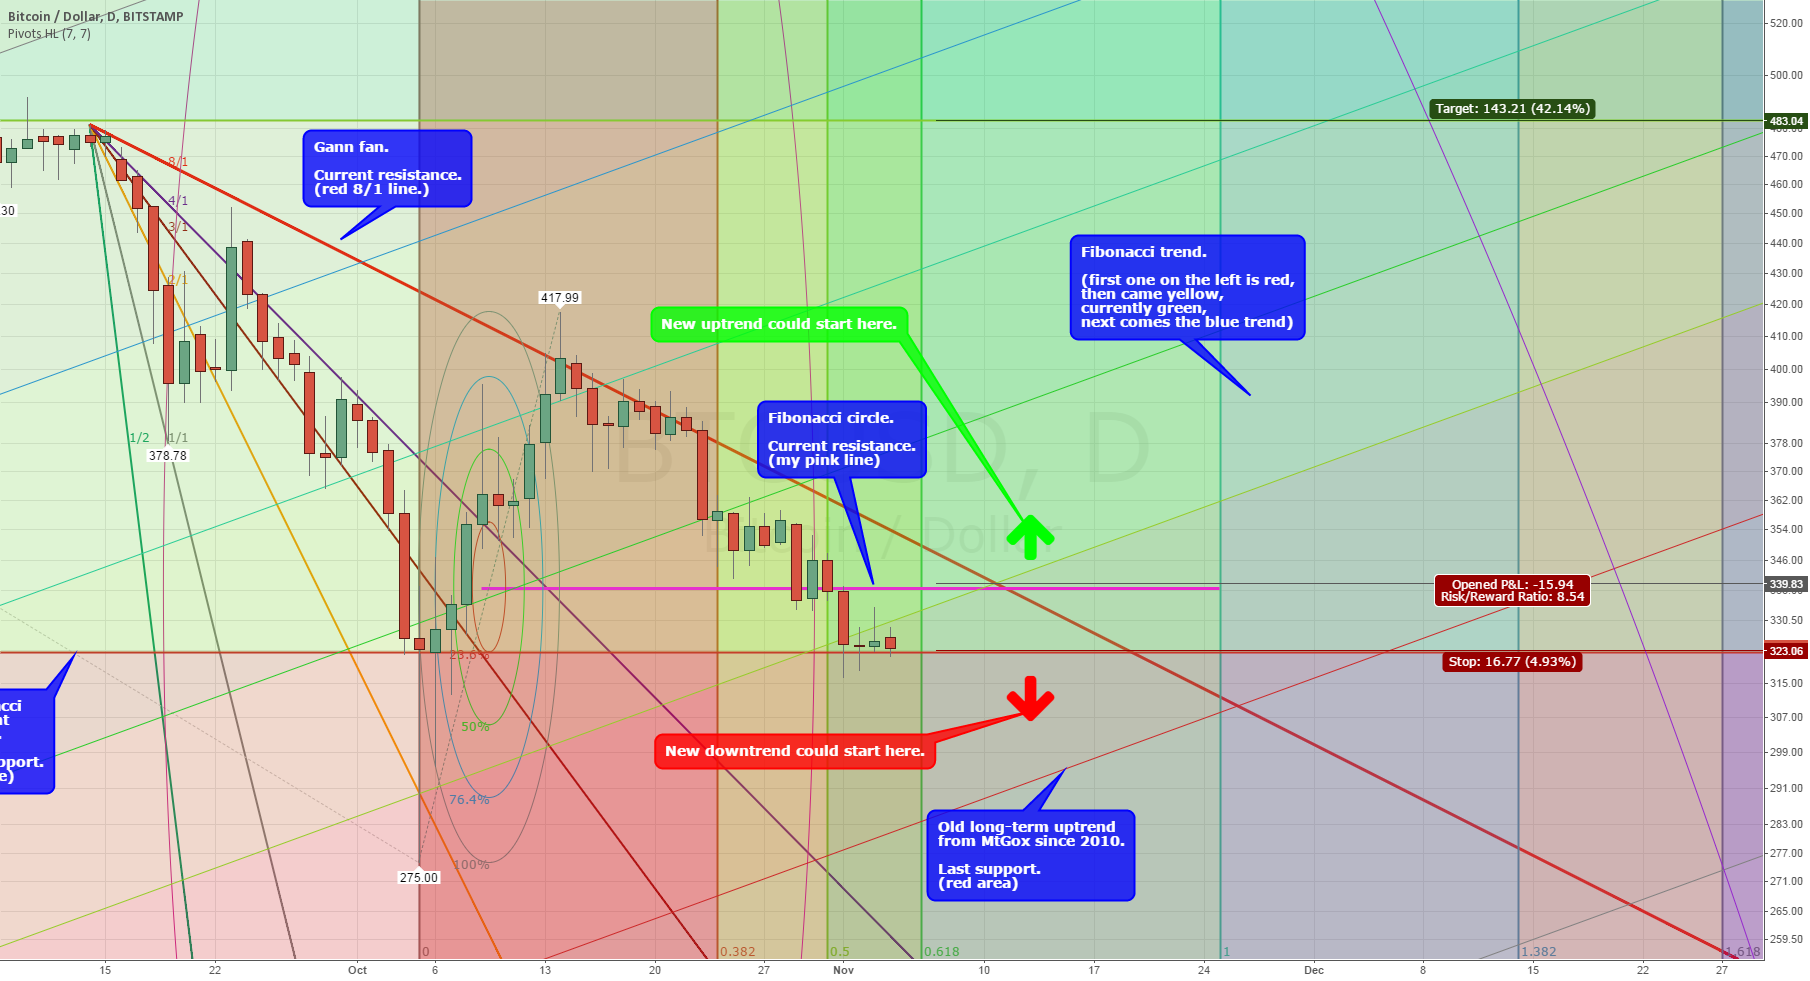 This could be the end of Bitcoin's 2014 downtrend!